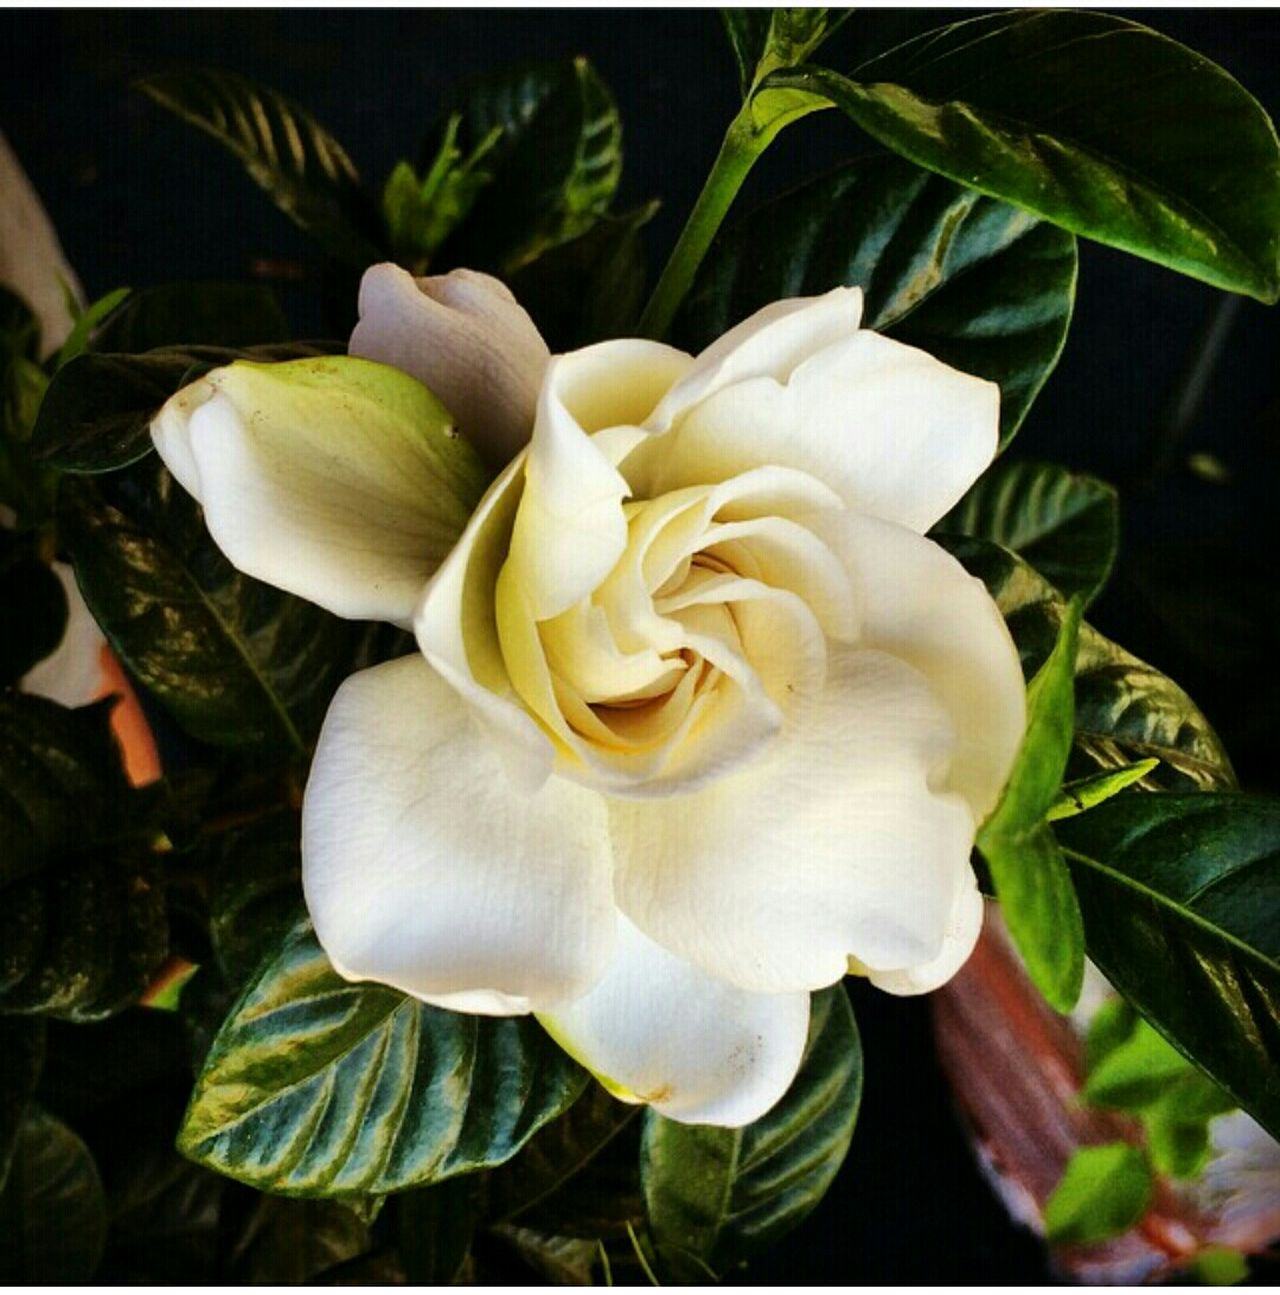 EyeEm Five Senses Smell Gardenia Flowers Flower Collection Plant Photography Beauty In Nature Beauty Gardenia My Favorite Flower Gardenias Flower Porn Perfume Smells Good Smellssogood Bestflowershot Bestflower Light Pretty Love Flowers EyeEm Best Shots Eye4photography  EyeEm Nature Lover EyeEm NYC NYC Photography Pleasantville